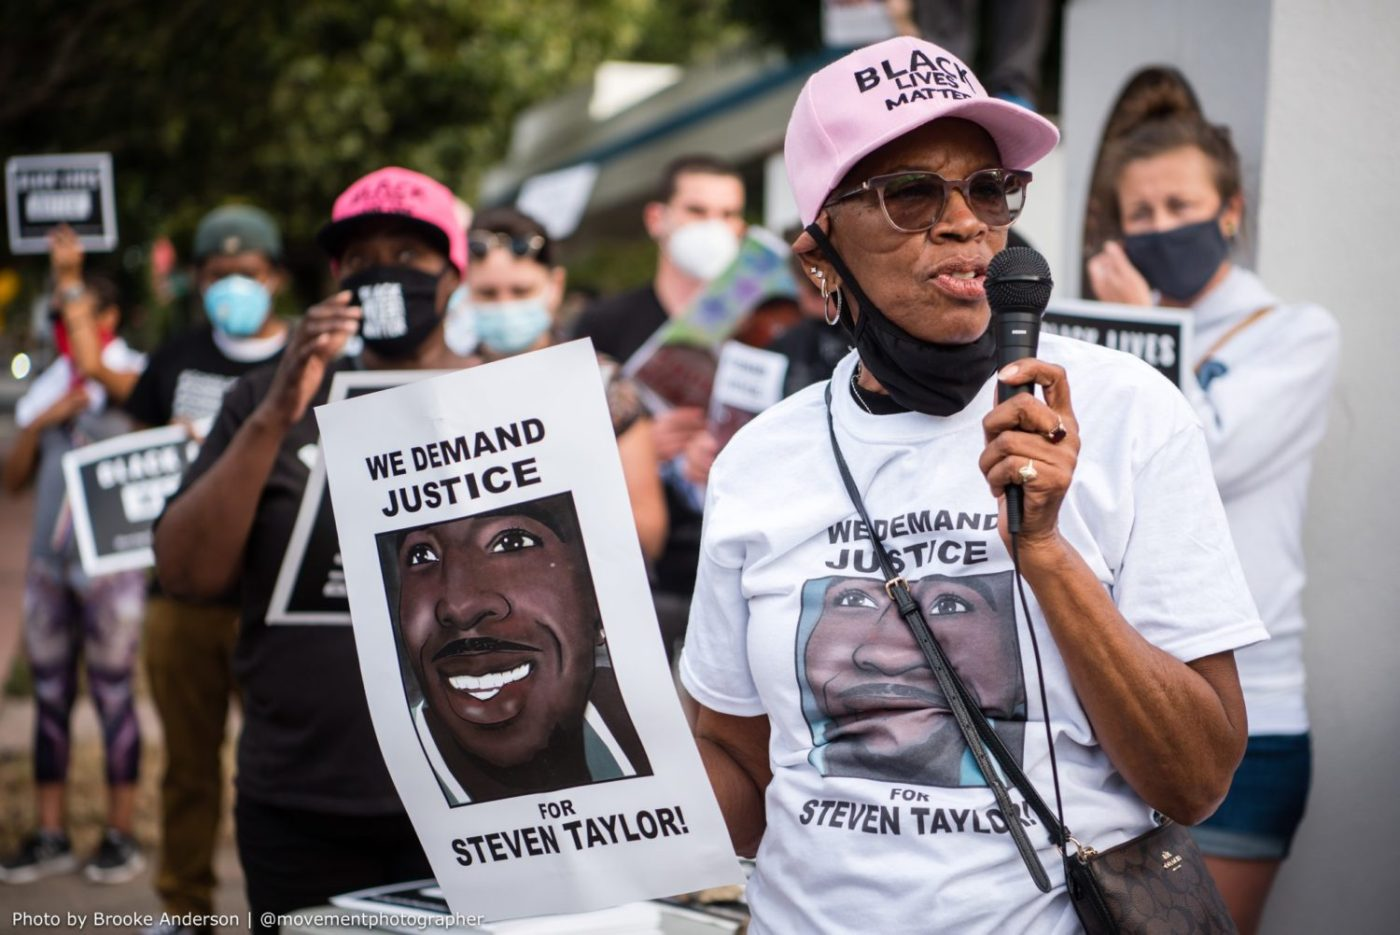 Addie-Kitchen-grandmother-of-San-Leandro-police-victim-Steven-Taylor-leads-rally-by-Brooke-Anderson-@movementphotographer-1400x935, Steven Taylor's Addie Kitchen: A grandmother's fight for justice, Local News & Views